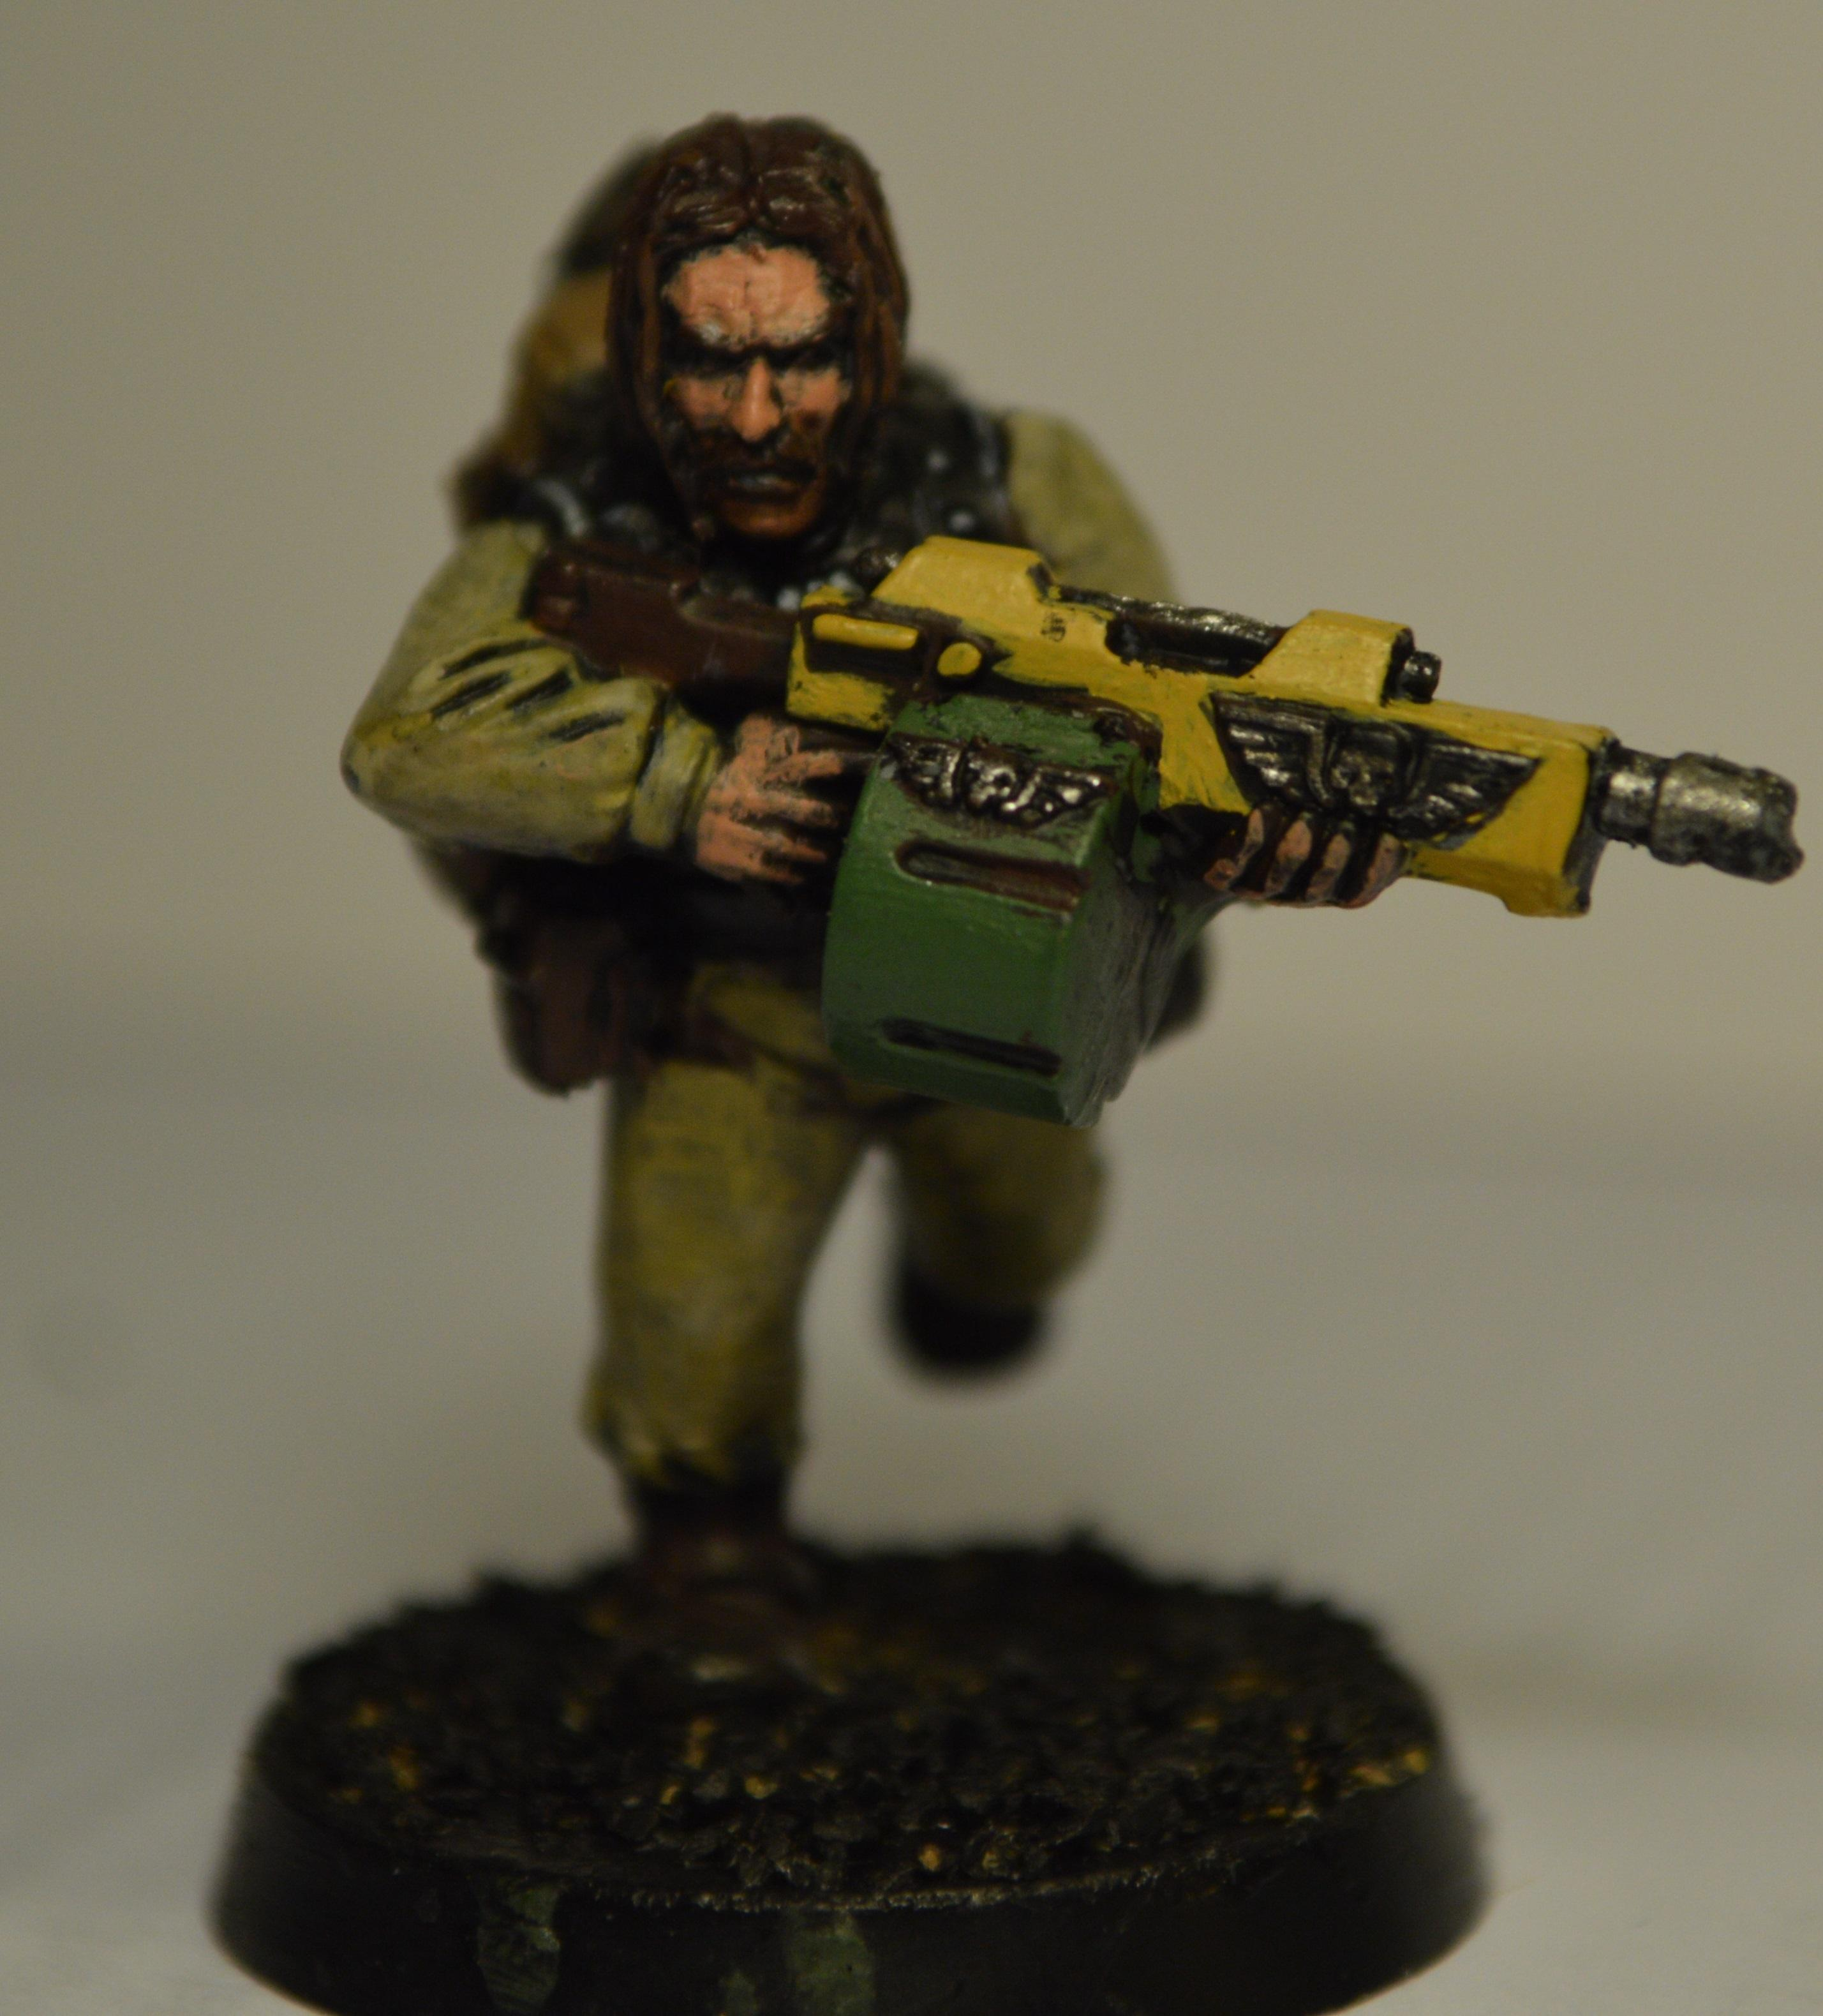 """Charlie """"Outlaw"""" Ronson.  Describes himself as being a """"procurement expert"""" before the invasion.  Quote: """"they say Orks don't feel pain or fear like we do.  I intend to test both of those theories"""""""